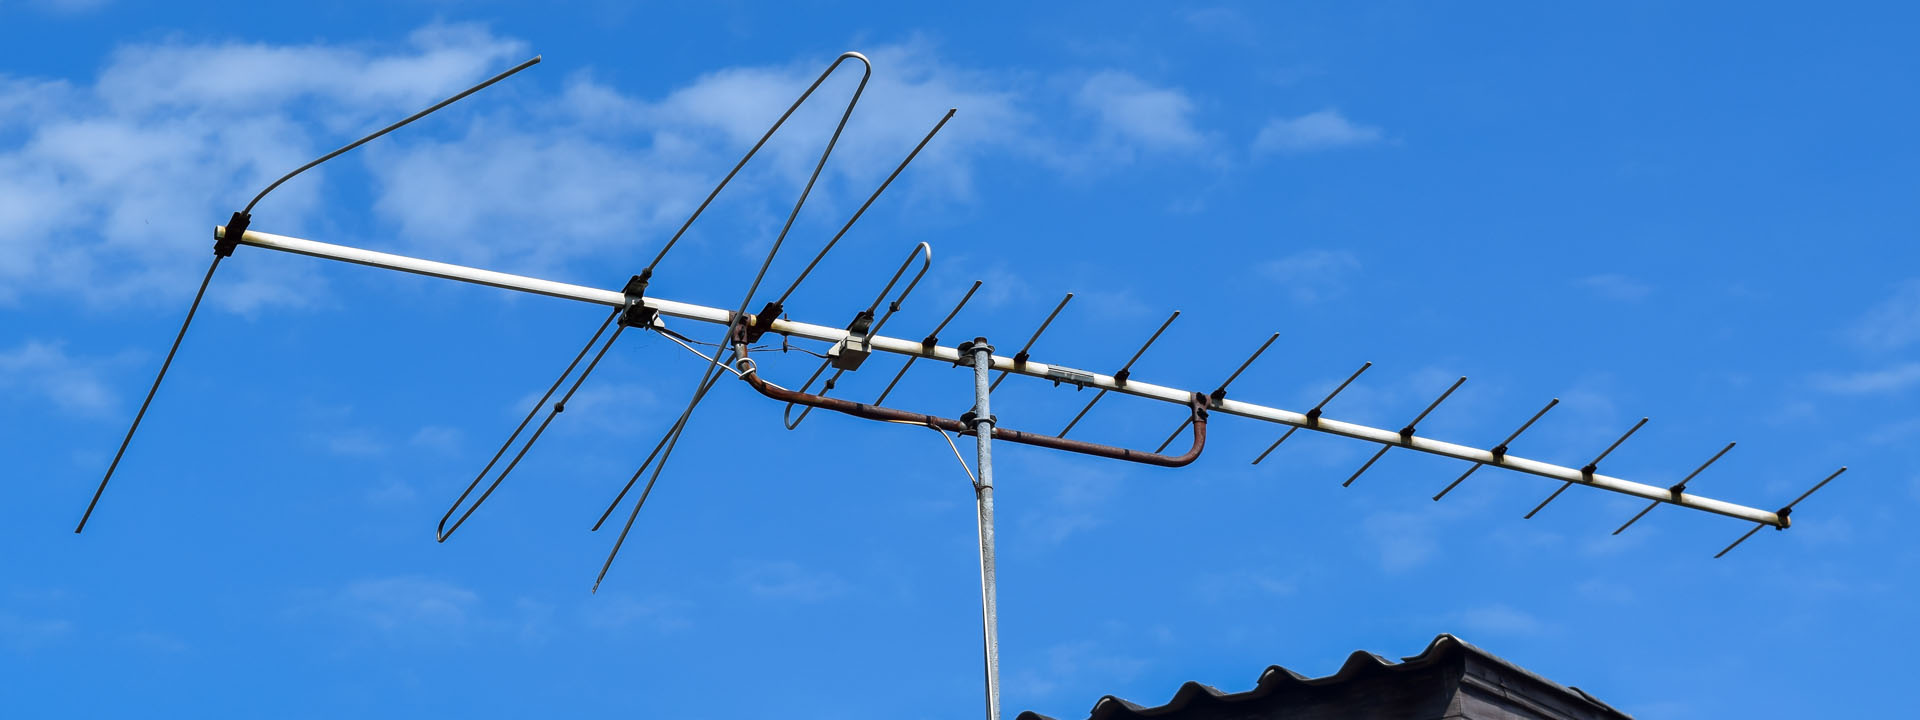 Off air antenna